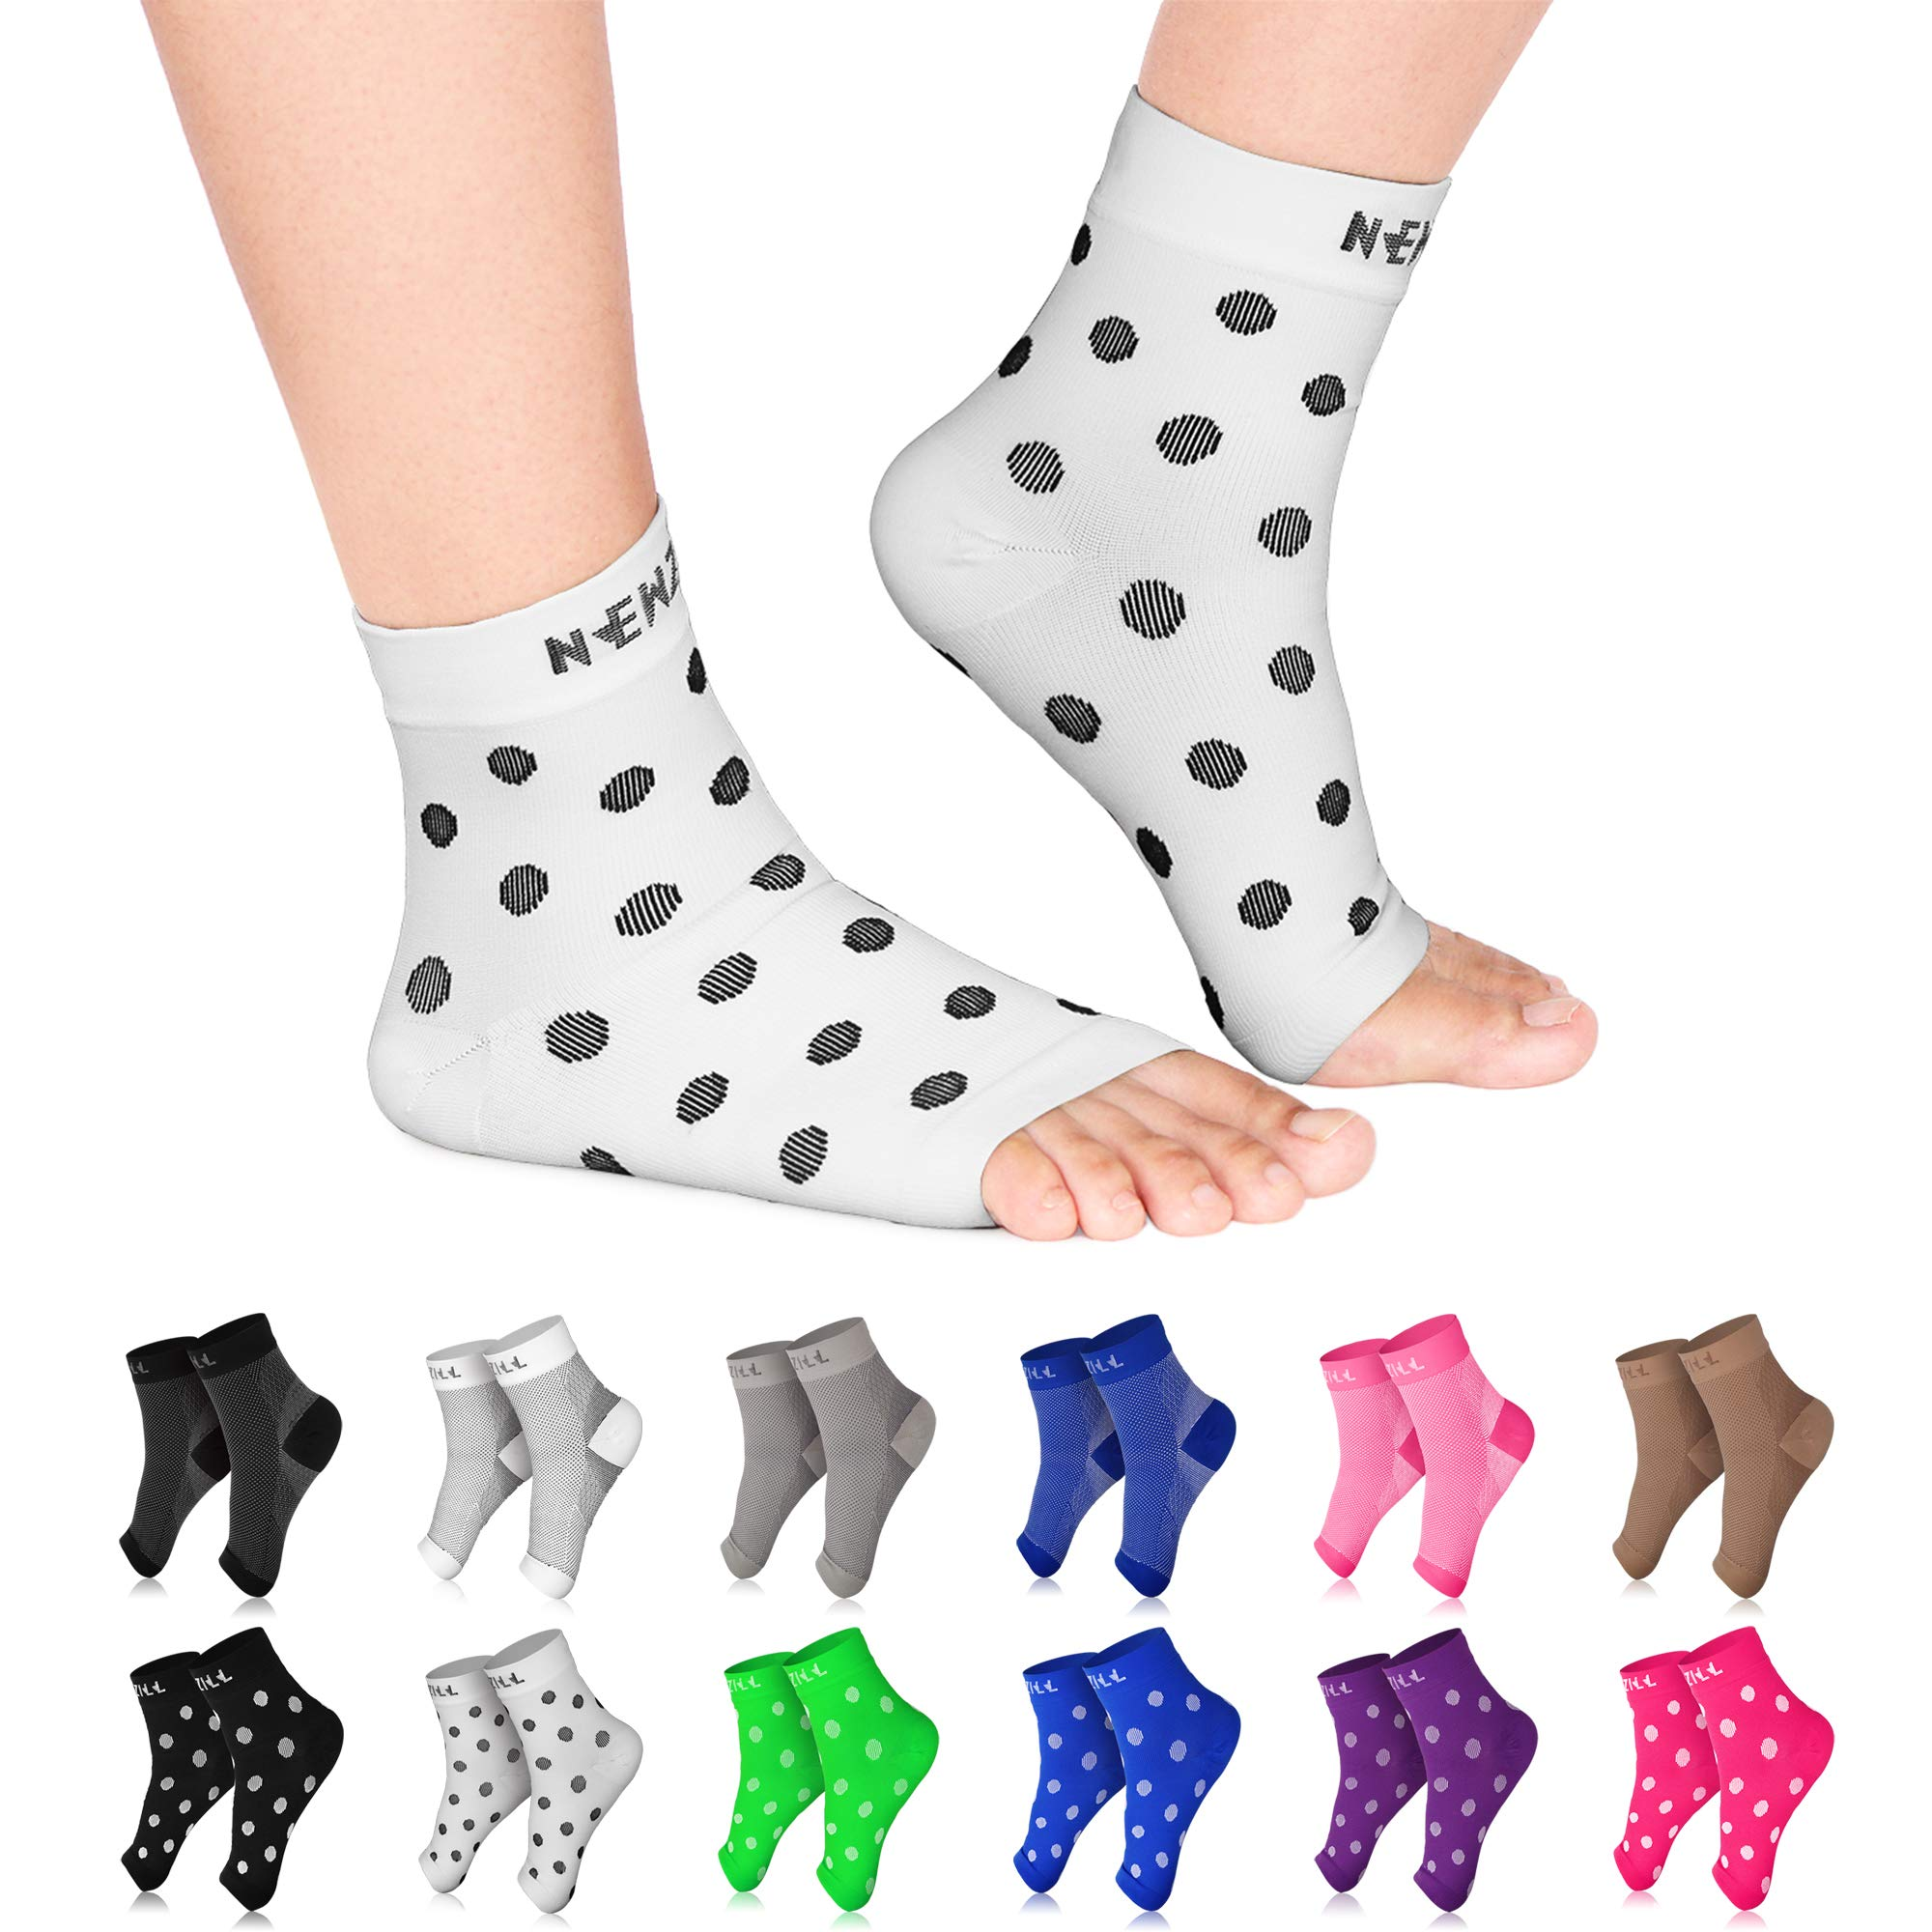 NEWZILL Plantar Fasciitis Socks with Arch Support, Best 24/7 Foot Care Compression Sleeve, Eases Swelling & Heel Spurs, Ankle Brace Support, Increases Circulation (S/M, White w Black Dots)